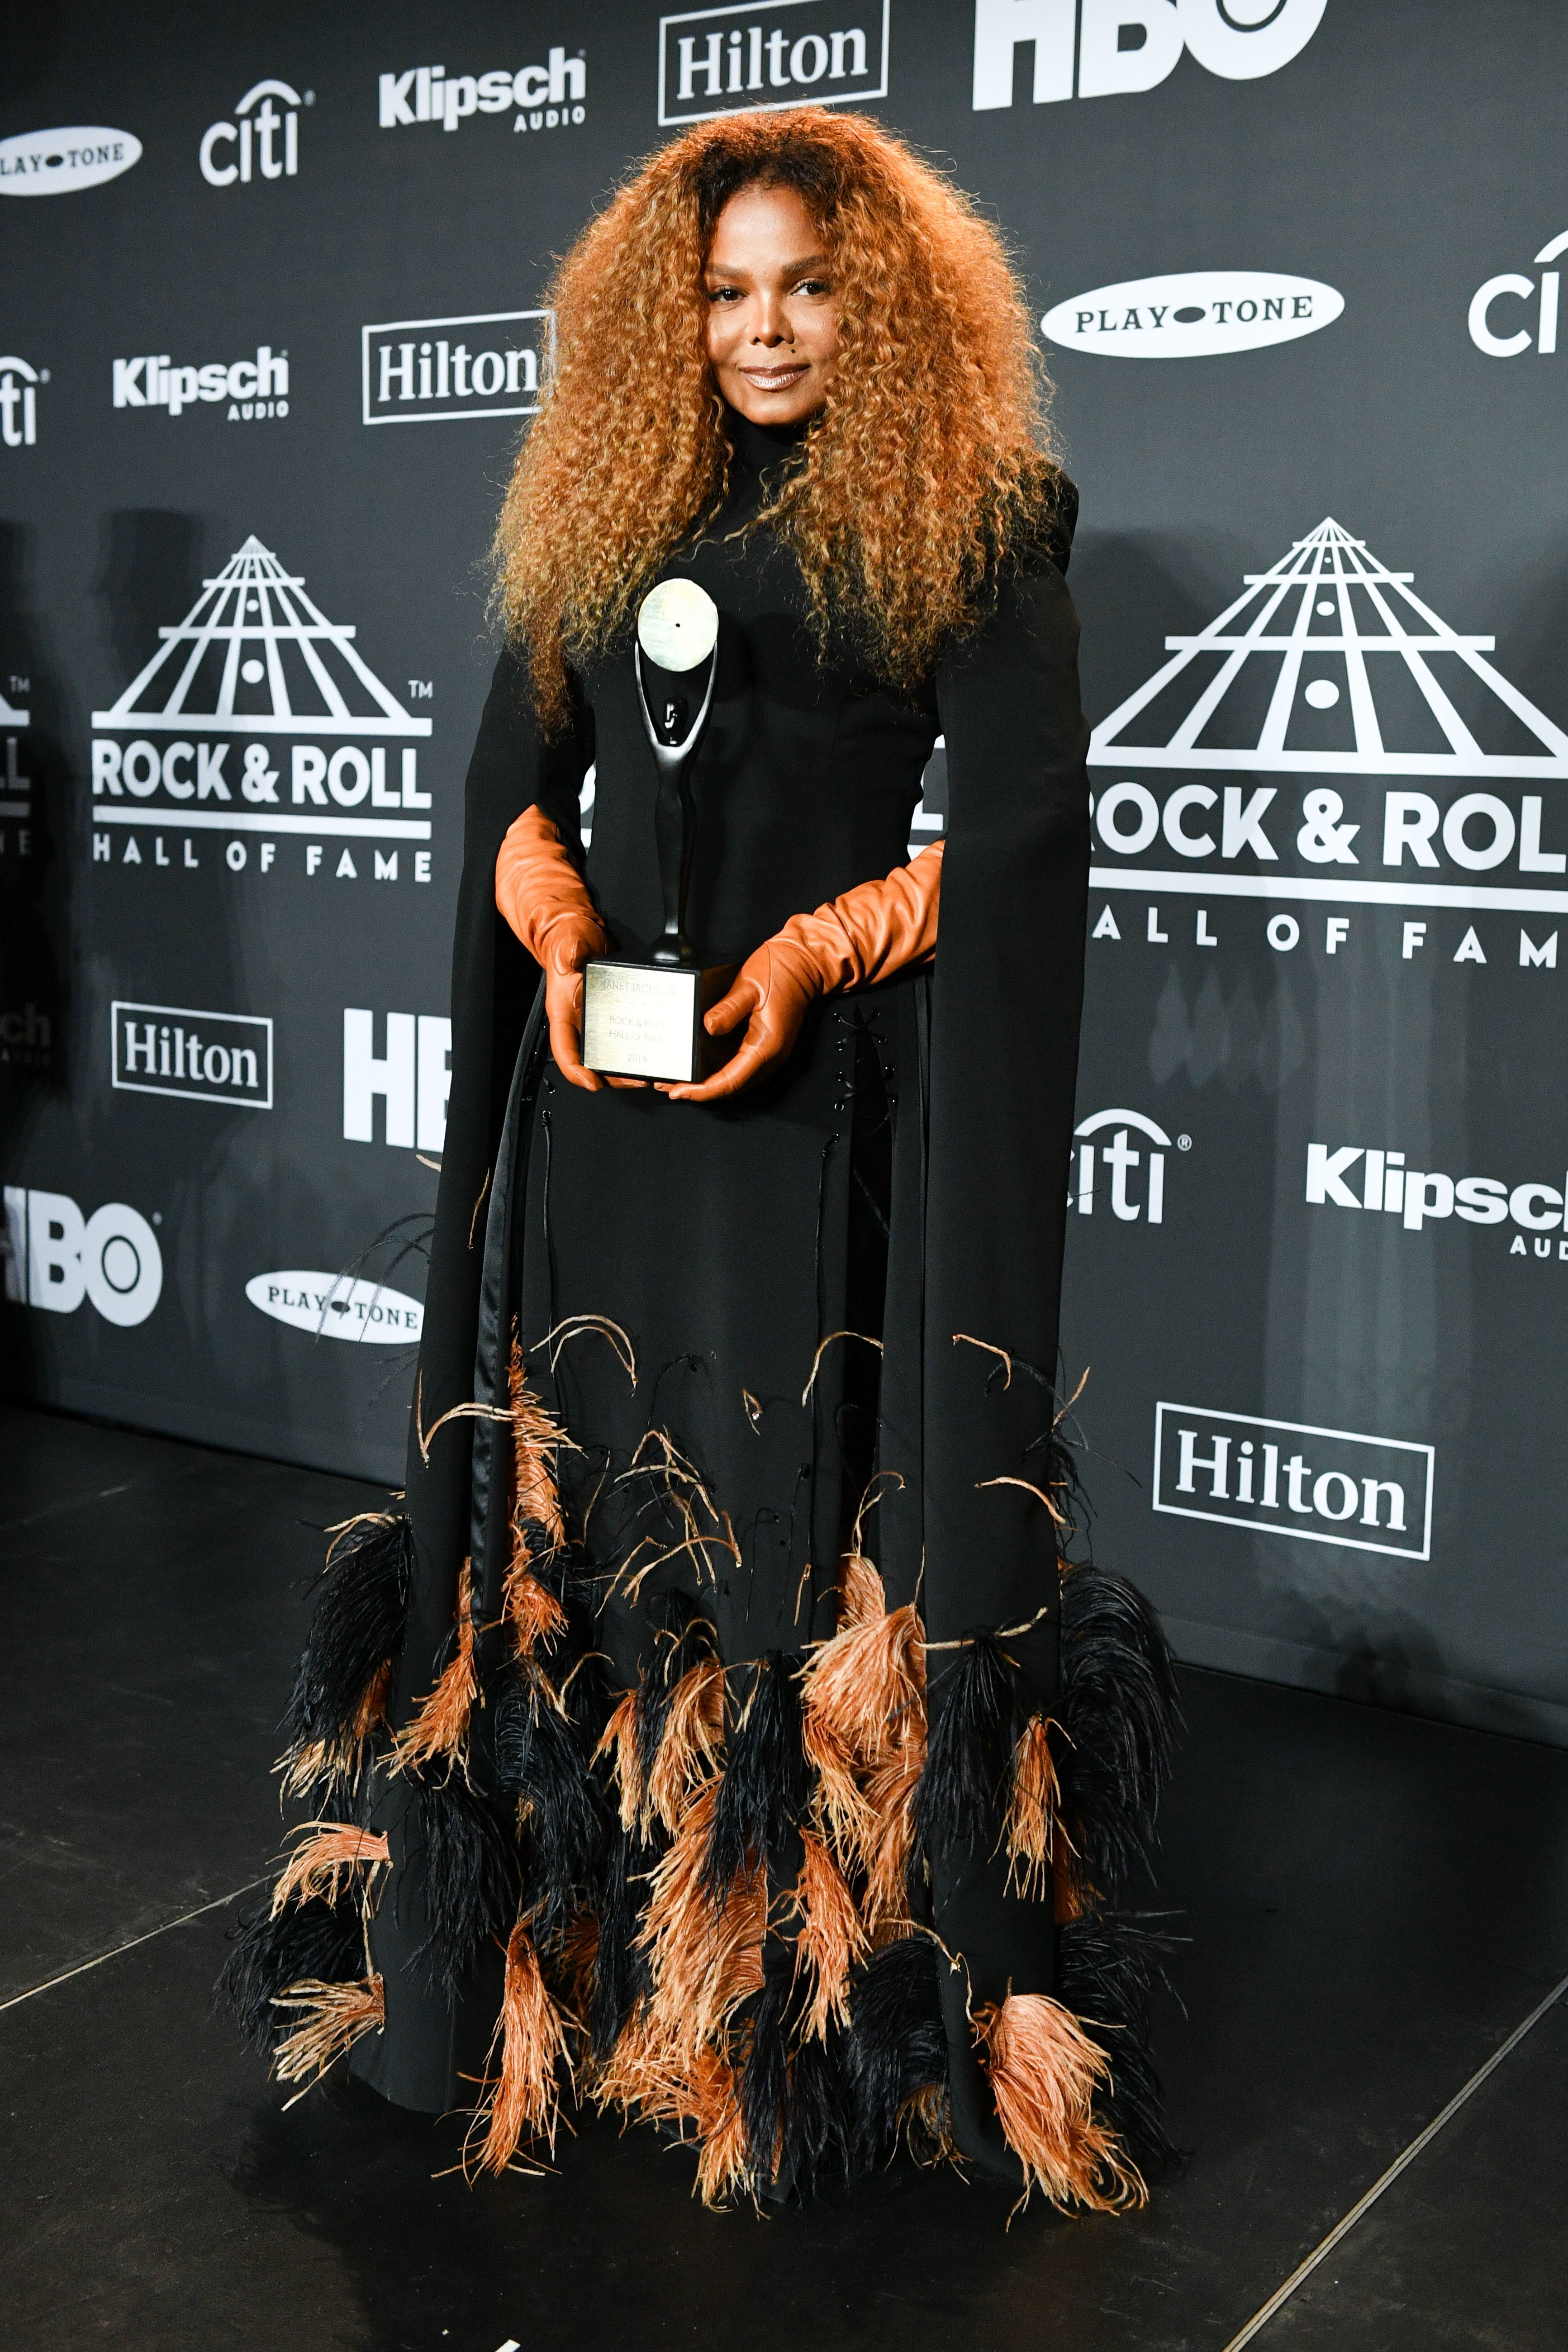 Janet Jackson  attends the Rock and Roll Hall of Fame Induction Ceremony in Brooklyn, New York, on March 29, 2019.